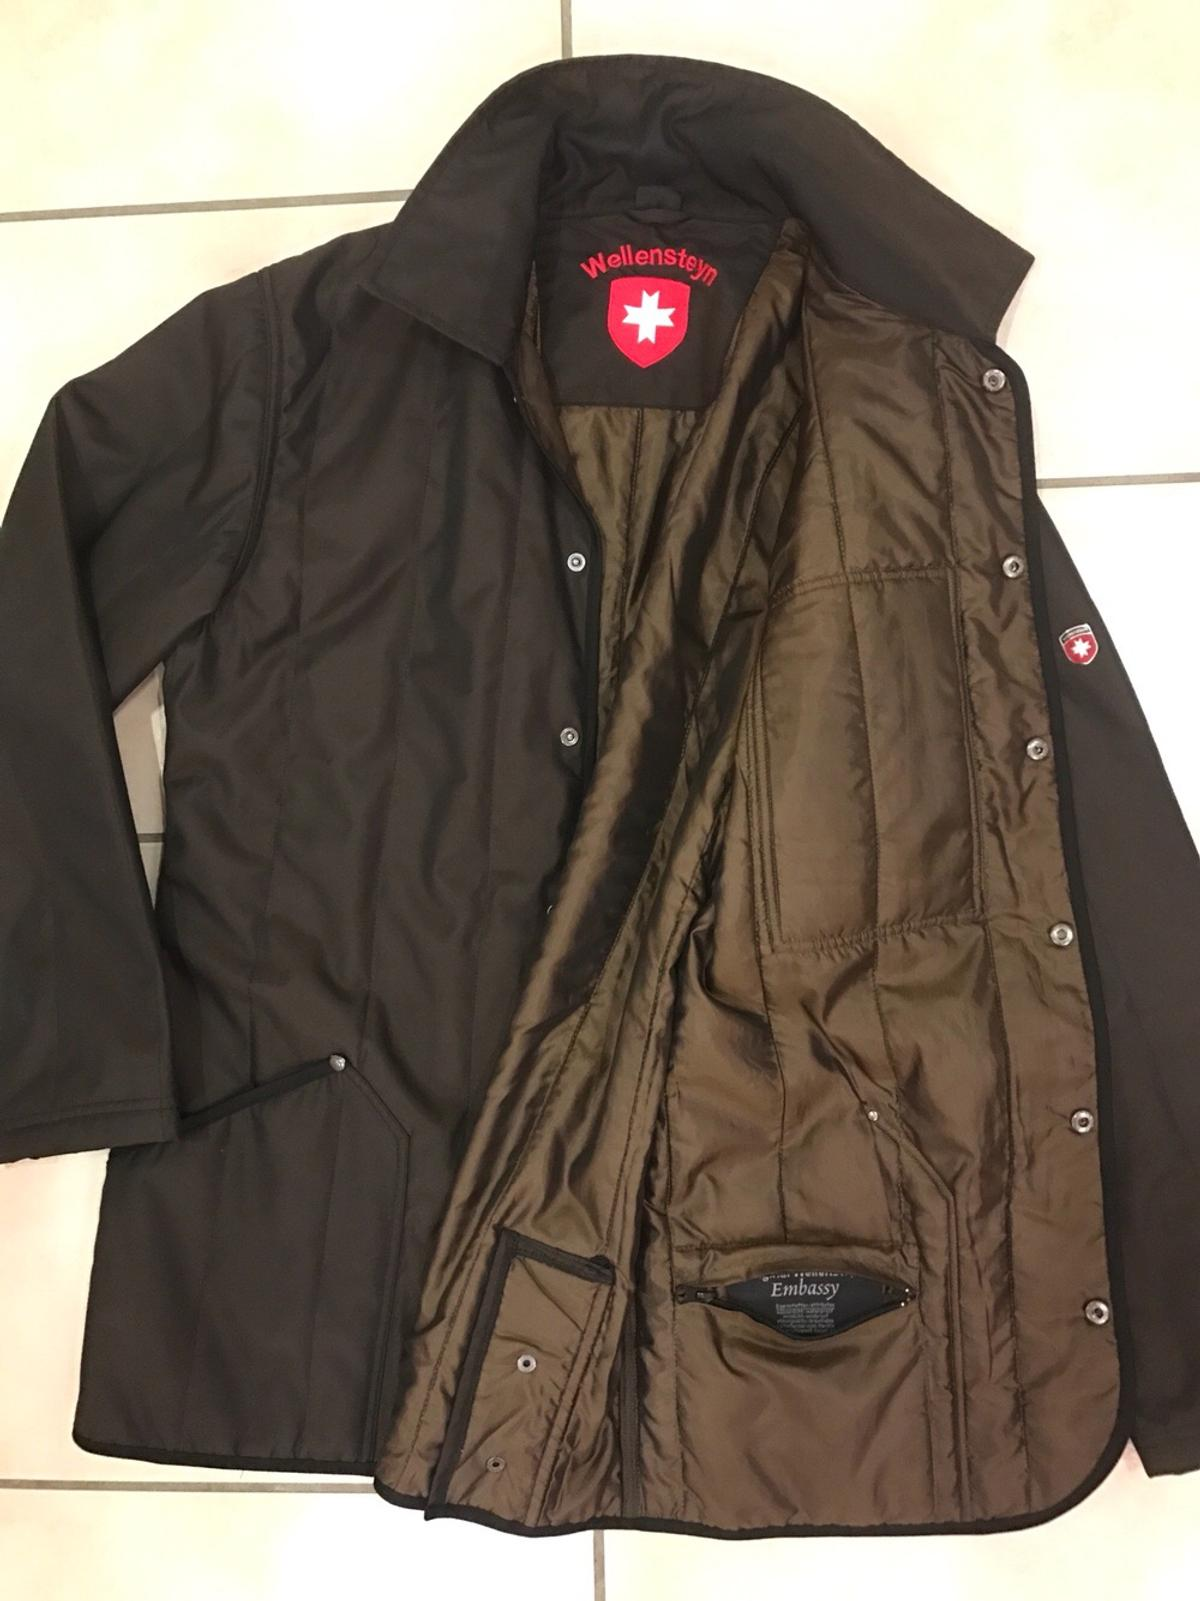 WELLENSTEYN EMBASSY HERREN Jacke Braun Gr. XL Orig TOP #09 7